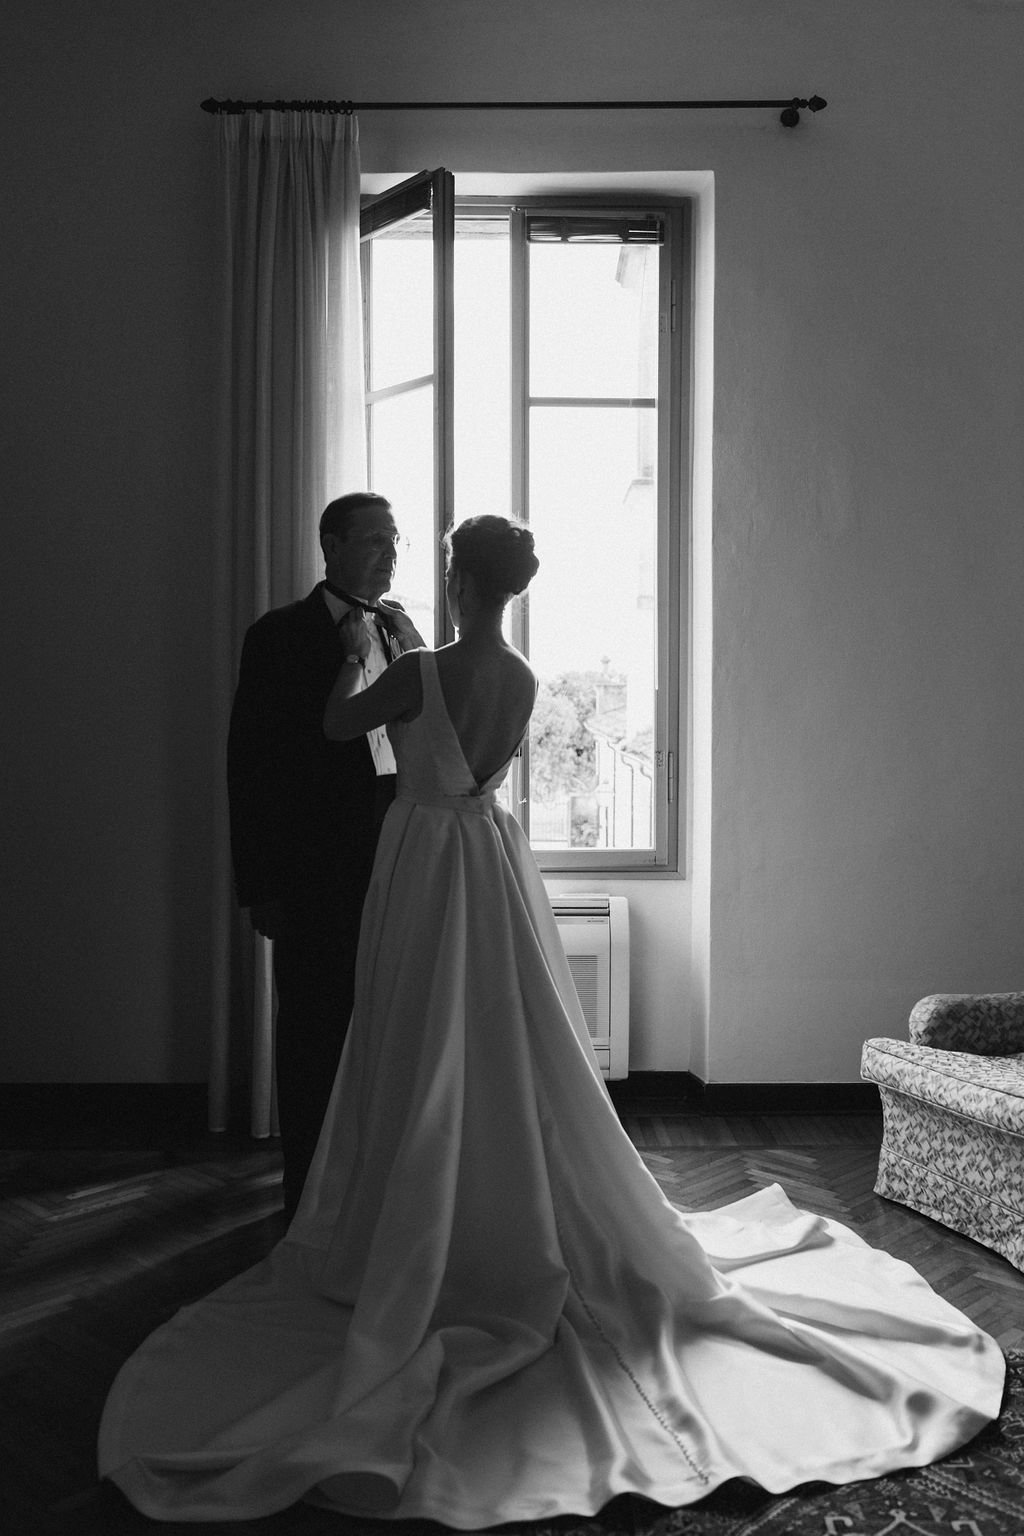 villa-mosconi-bertani-wedding-photographer-roberta-facchini-photography-15